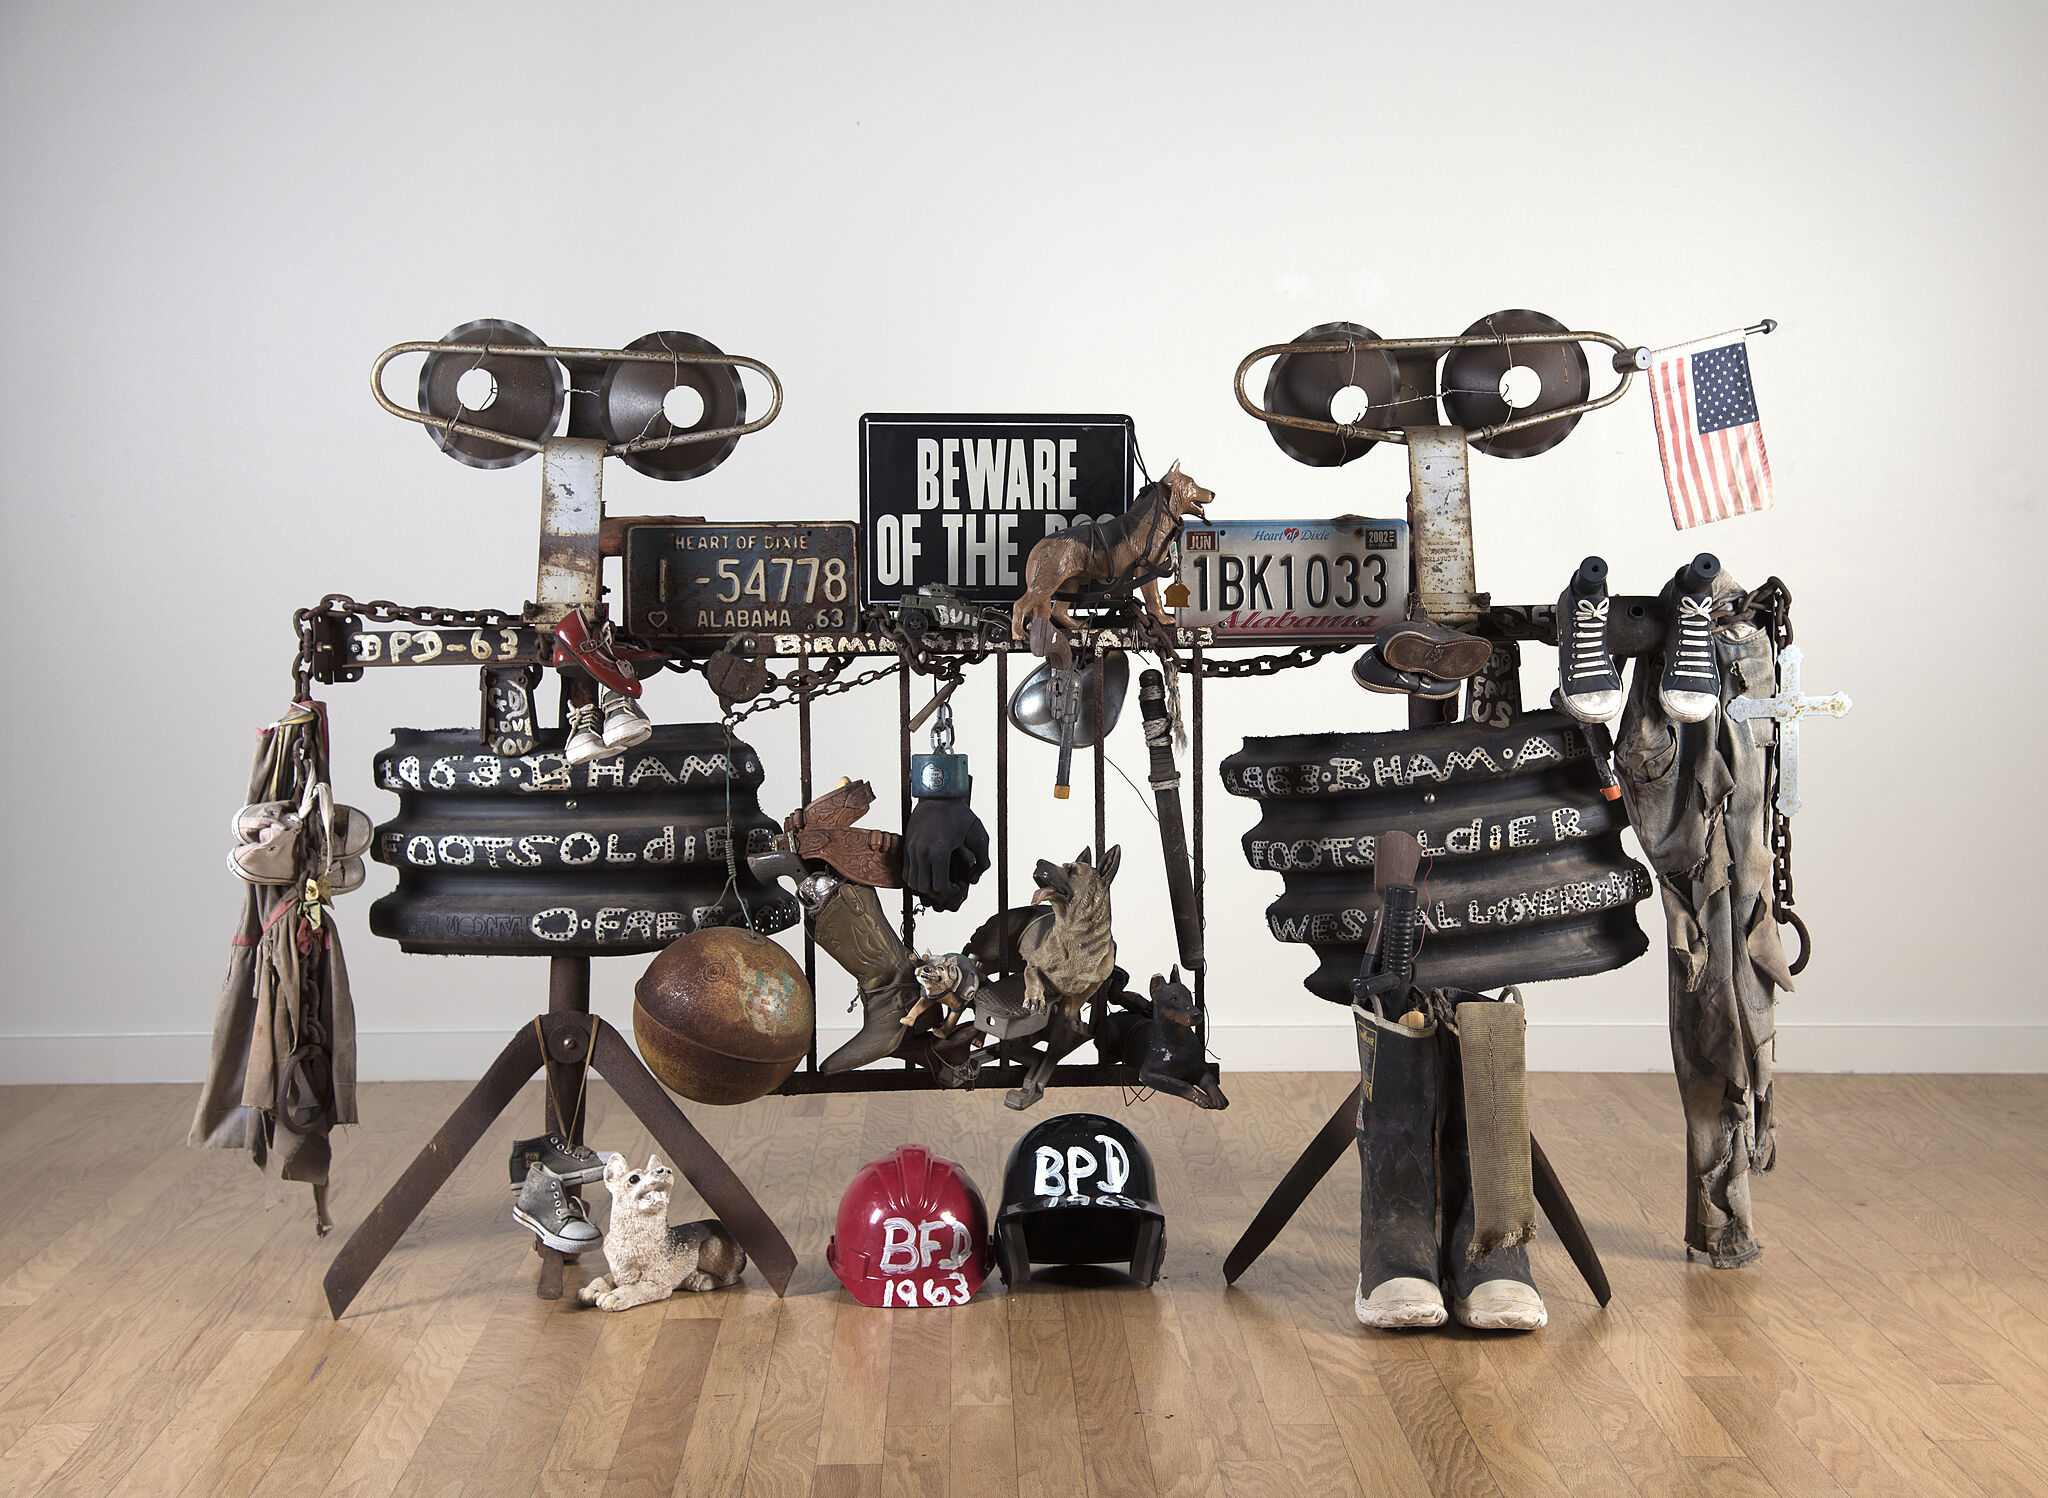 Sculptures made out of license plates and other metal parts.